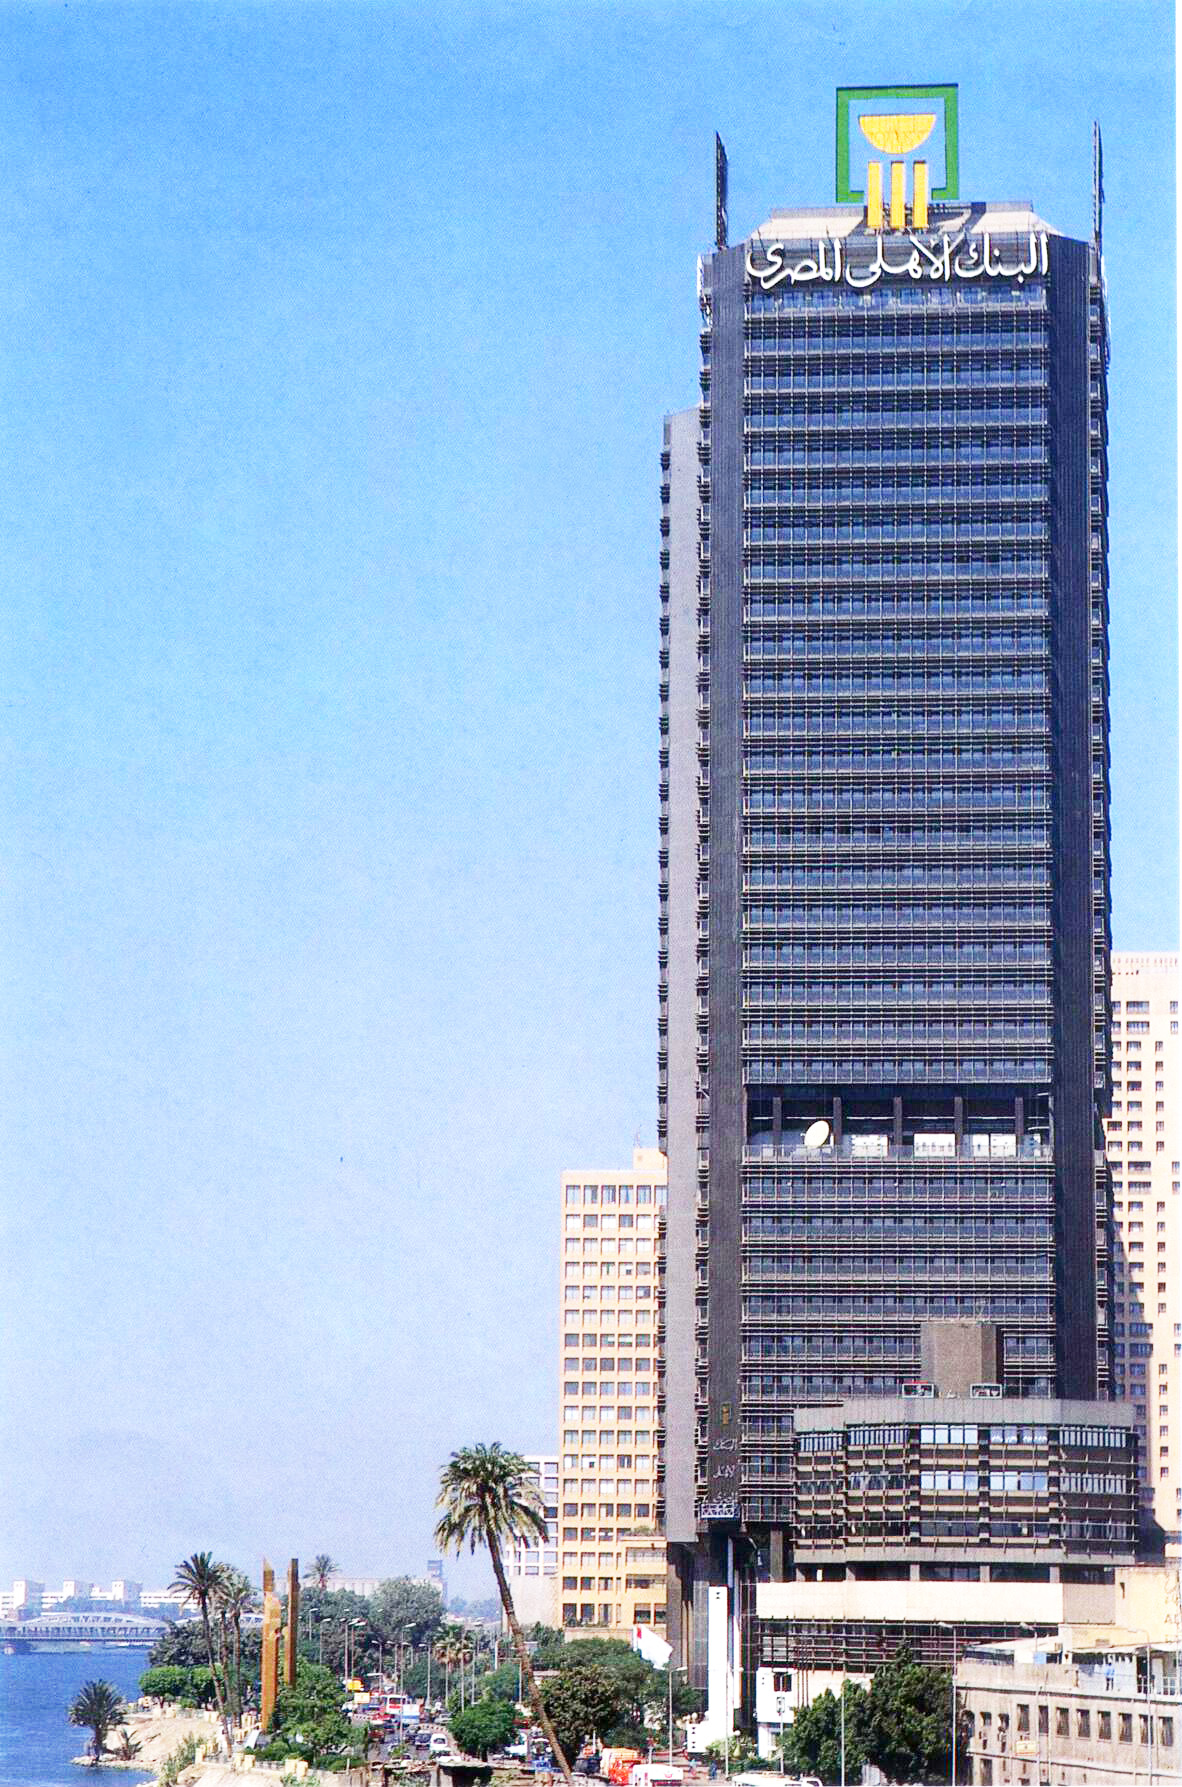 NBE achieved EGP 15.1bn-worth of growth during the fiscal year that ended in June 2012, bringing the bank's total financial value to EGP 321.5bn, compared to EGP 306.4bn the previous year (Photo Public Domain)